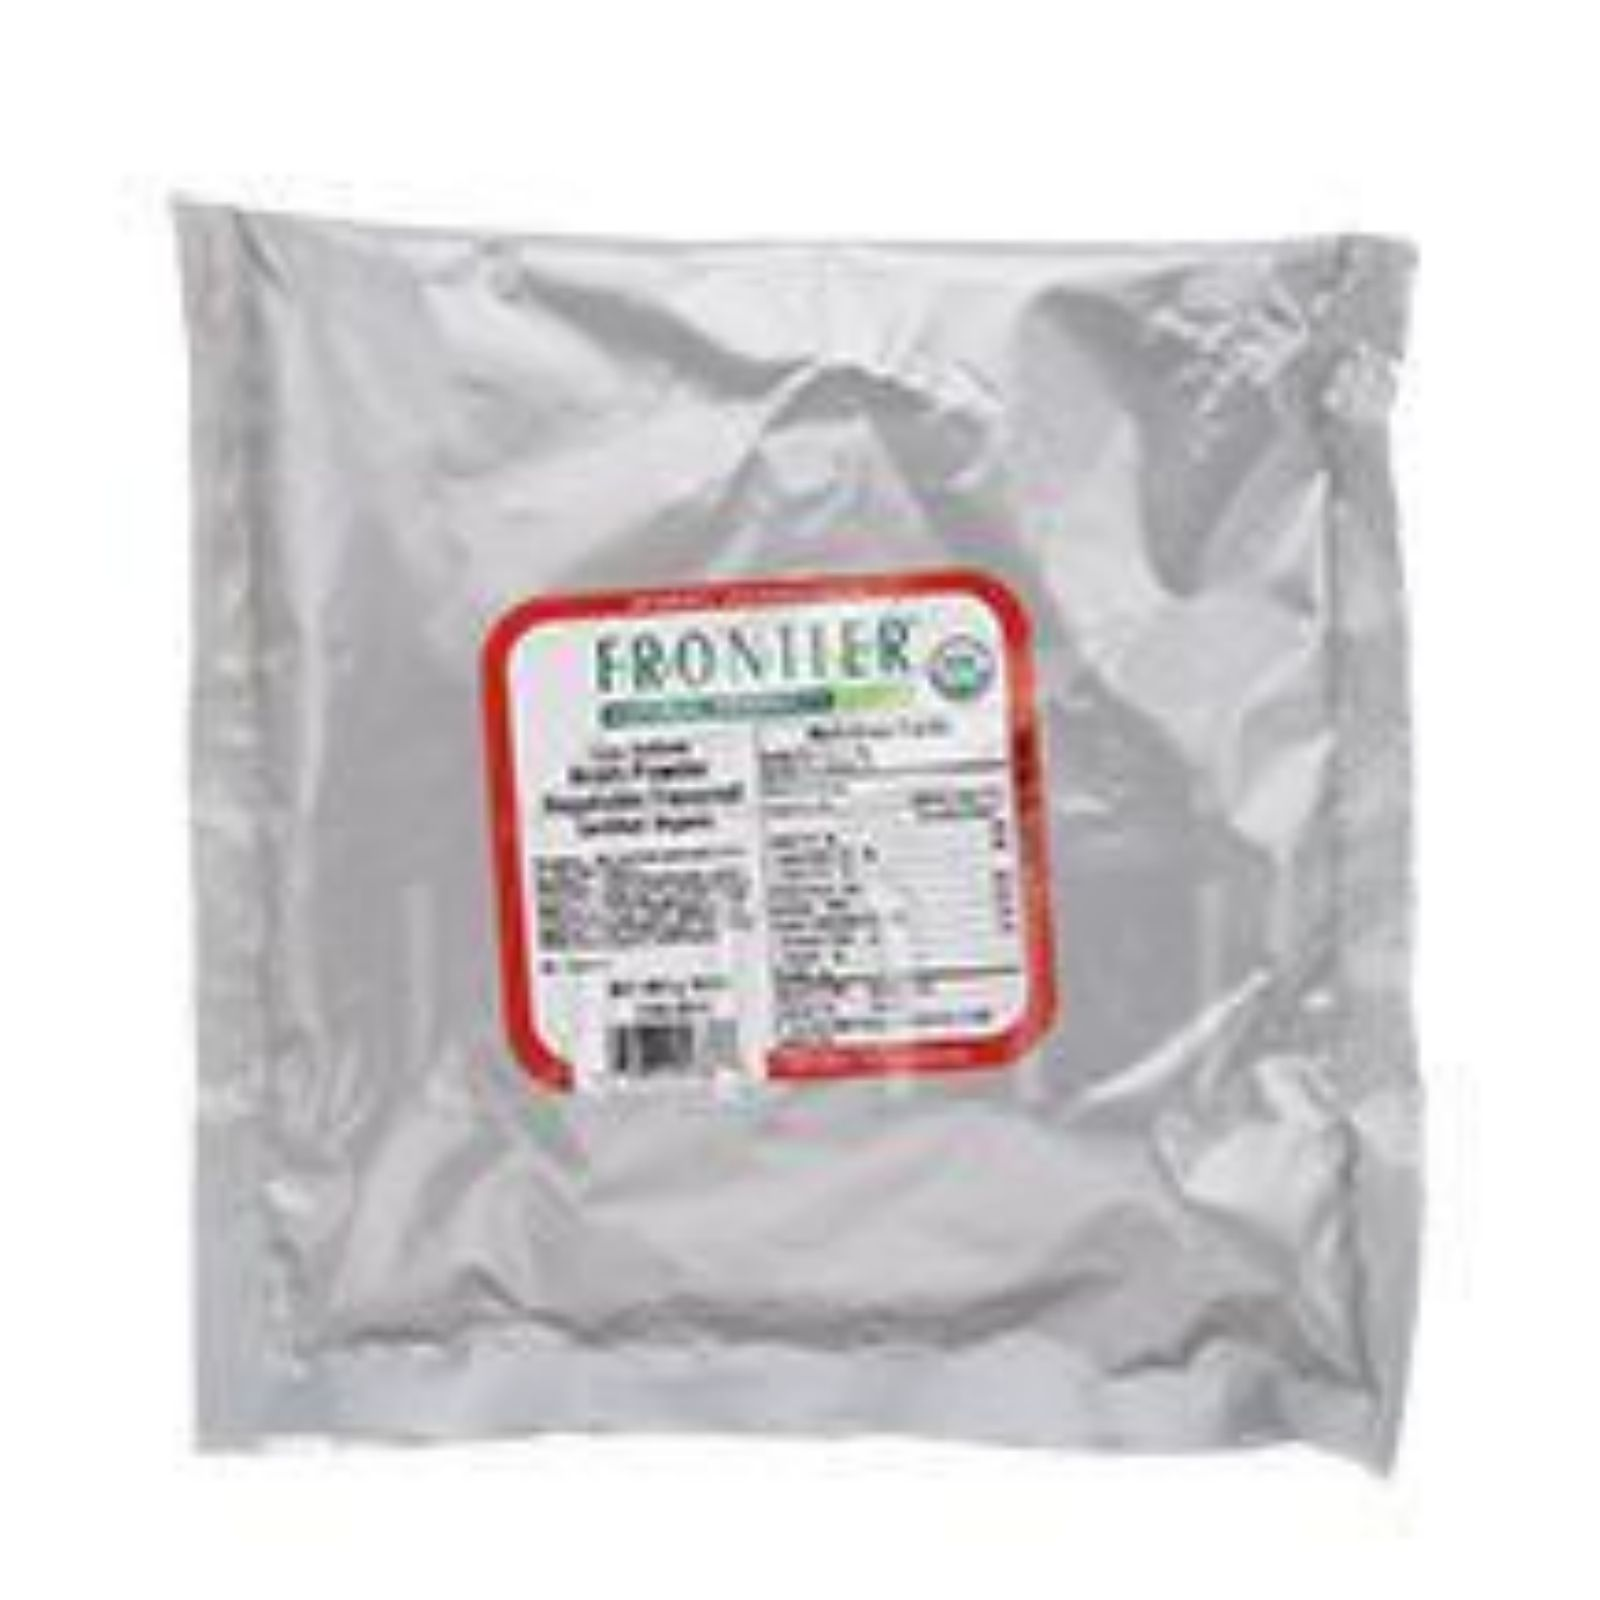 Frontier Herb Broth Powder - Organic - Vegetable - Low Sodium - Bulk - 1 Lb